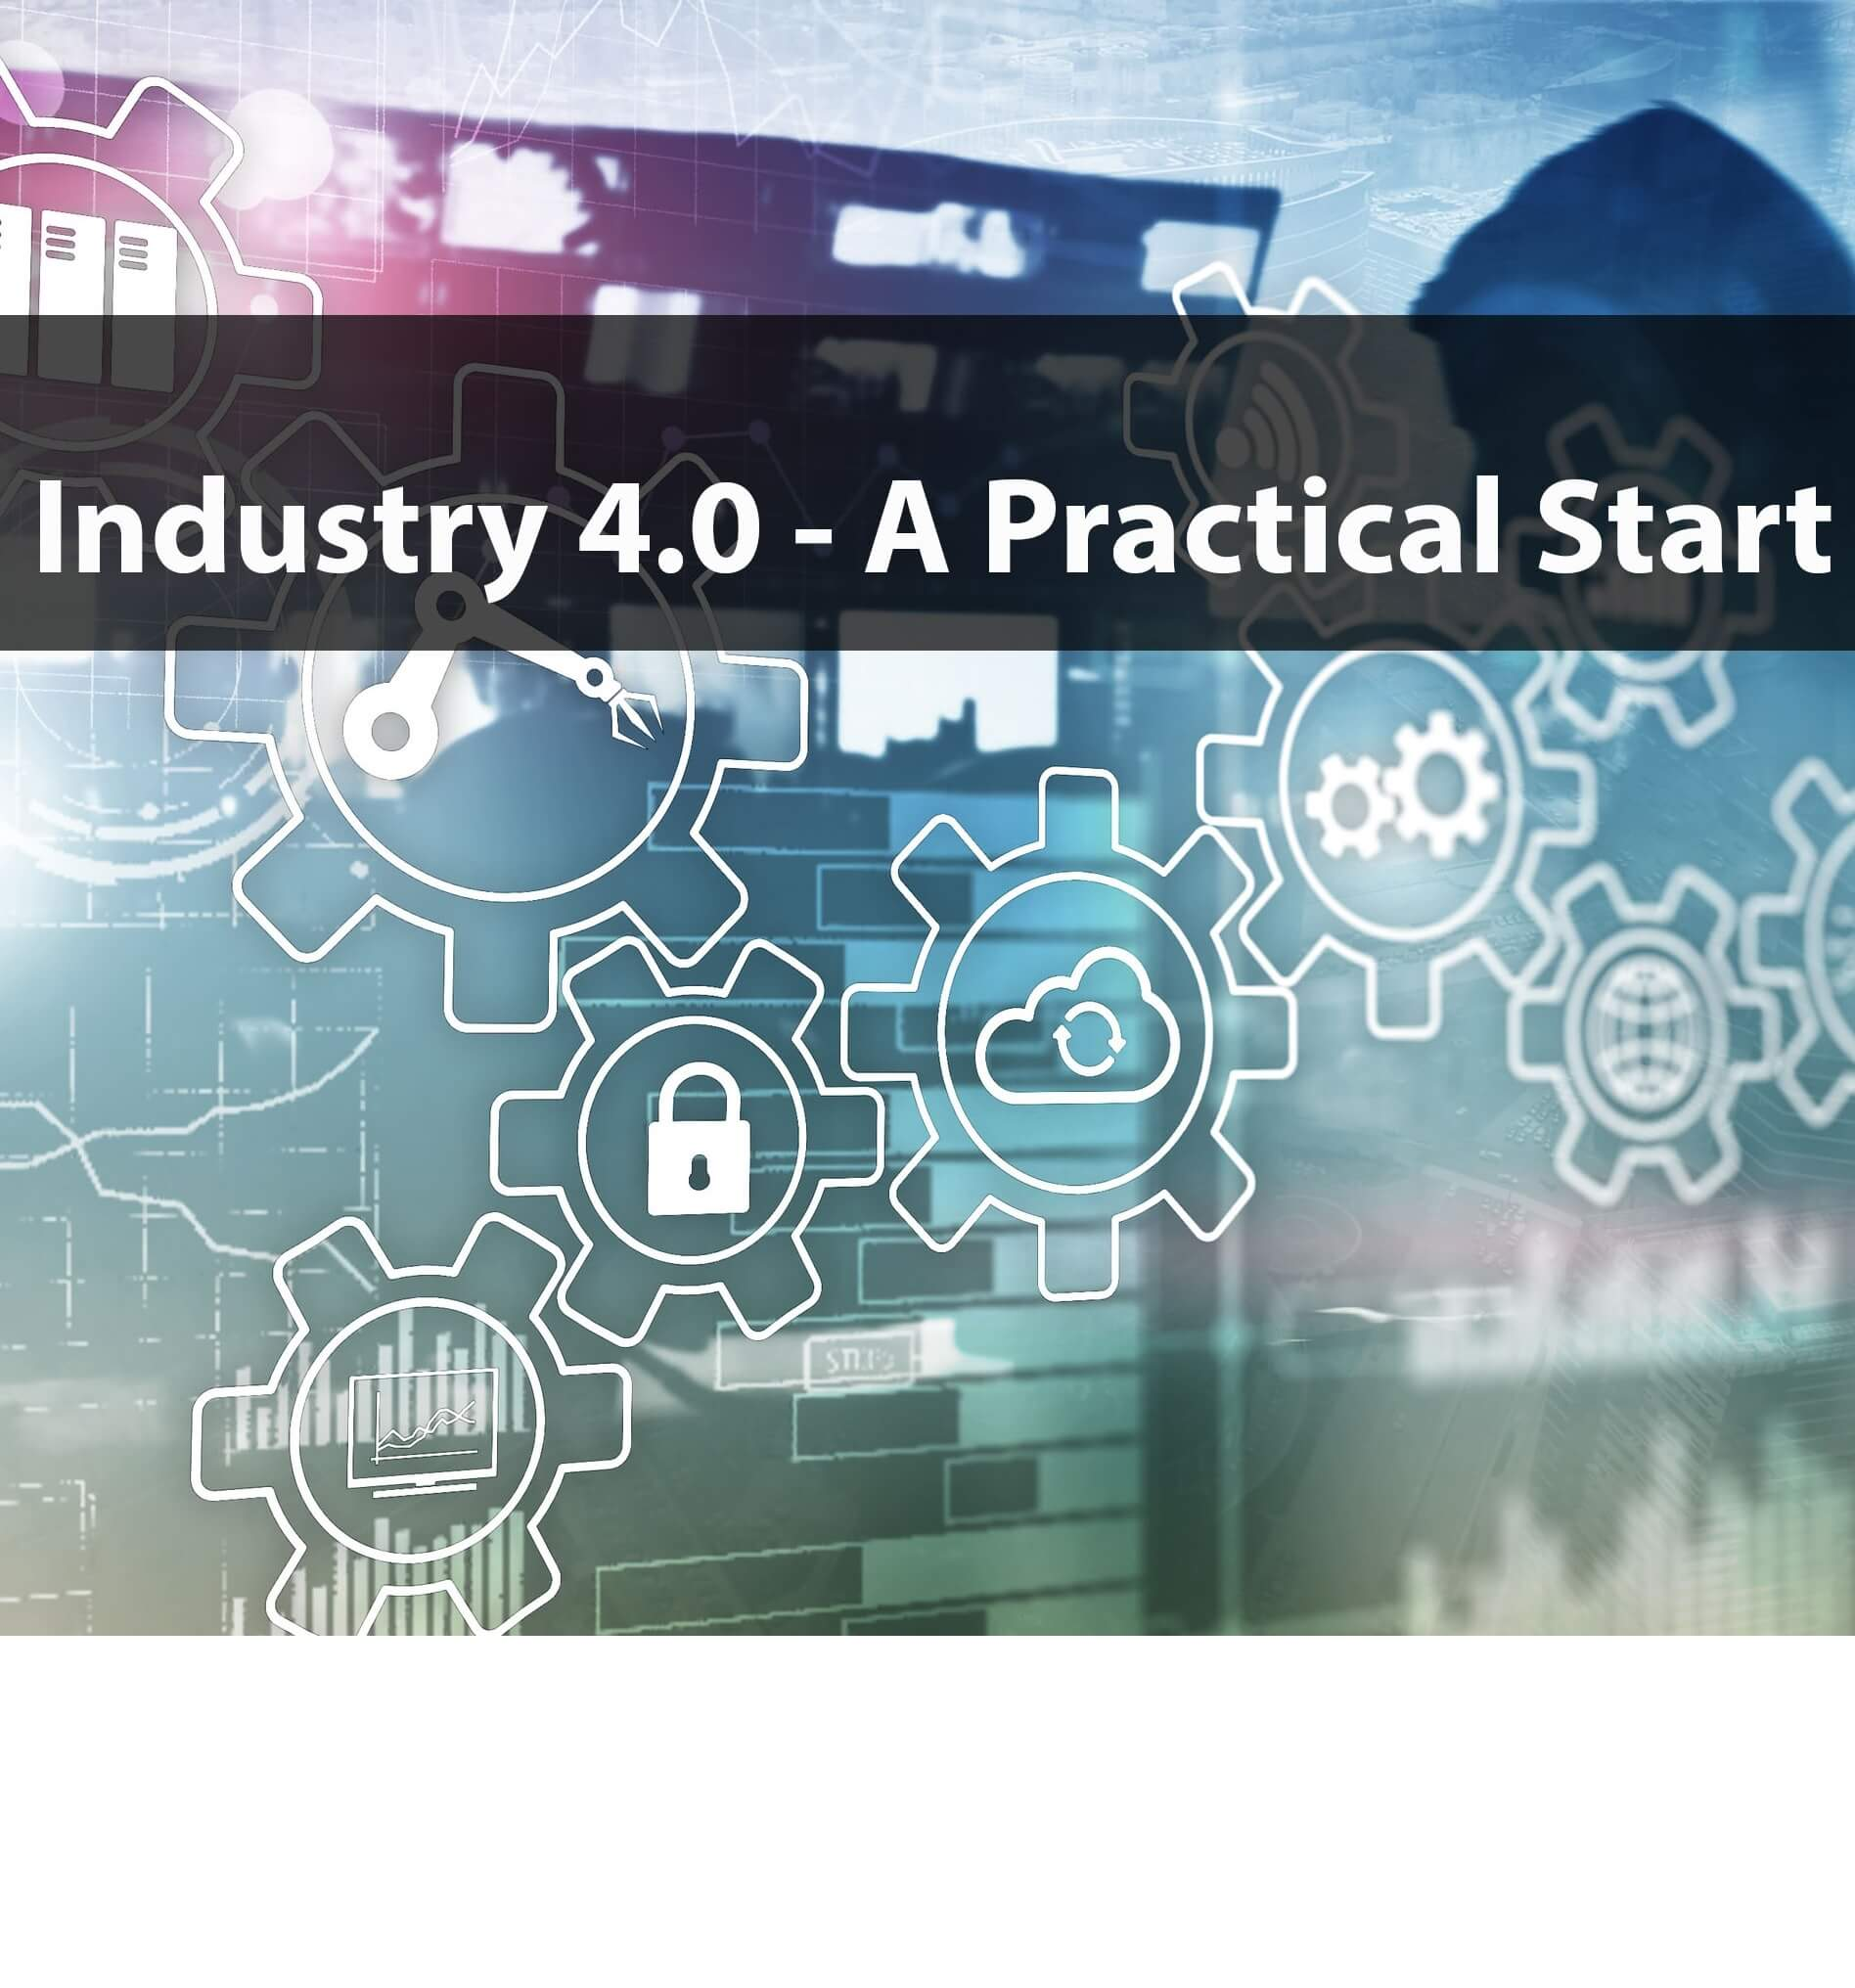 Industry 4.0 – A Practical Start